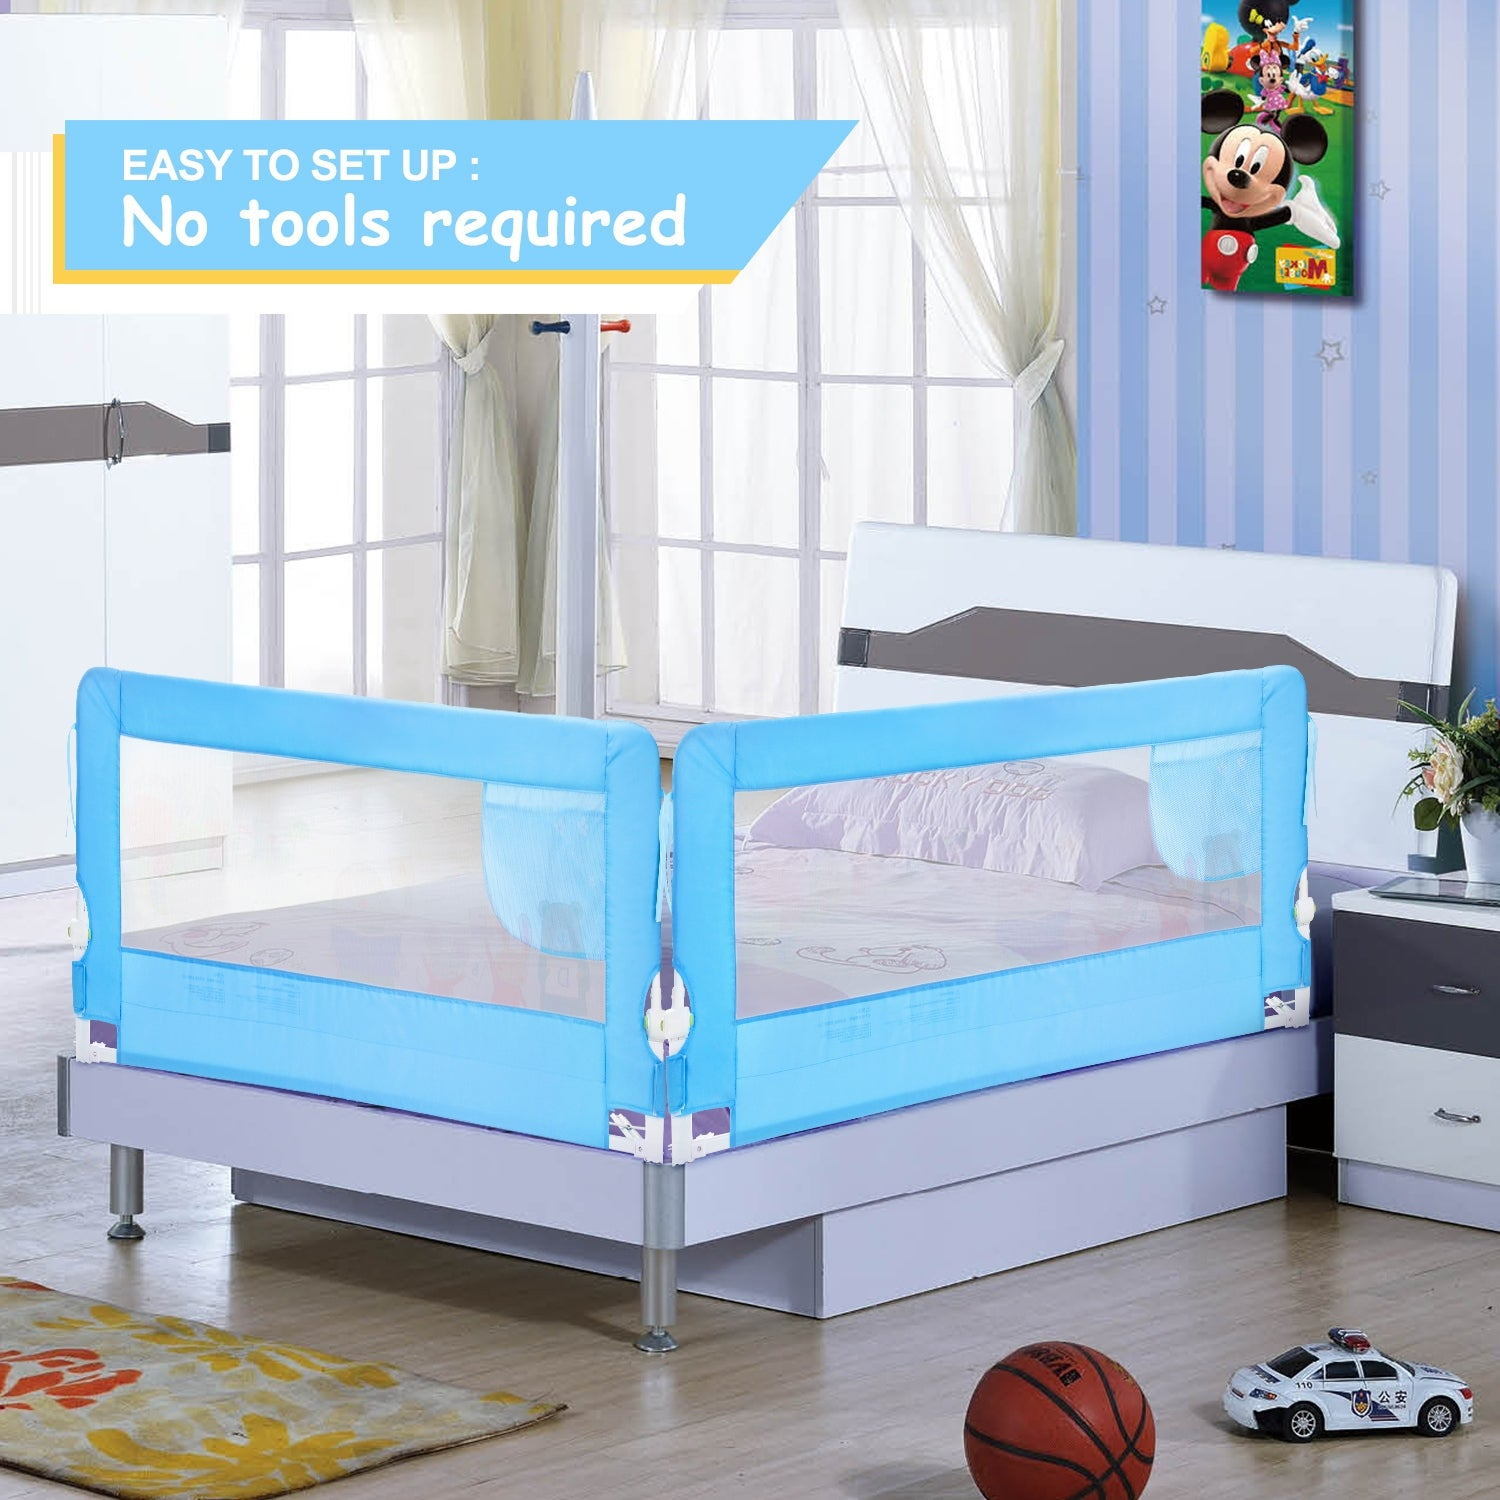 59in Toddler Bed Rail For Twin Bed Also For Queen And King Size Beds Bule M Overstock 32048034